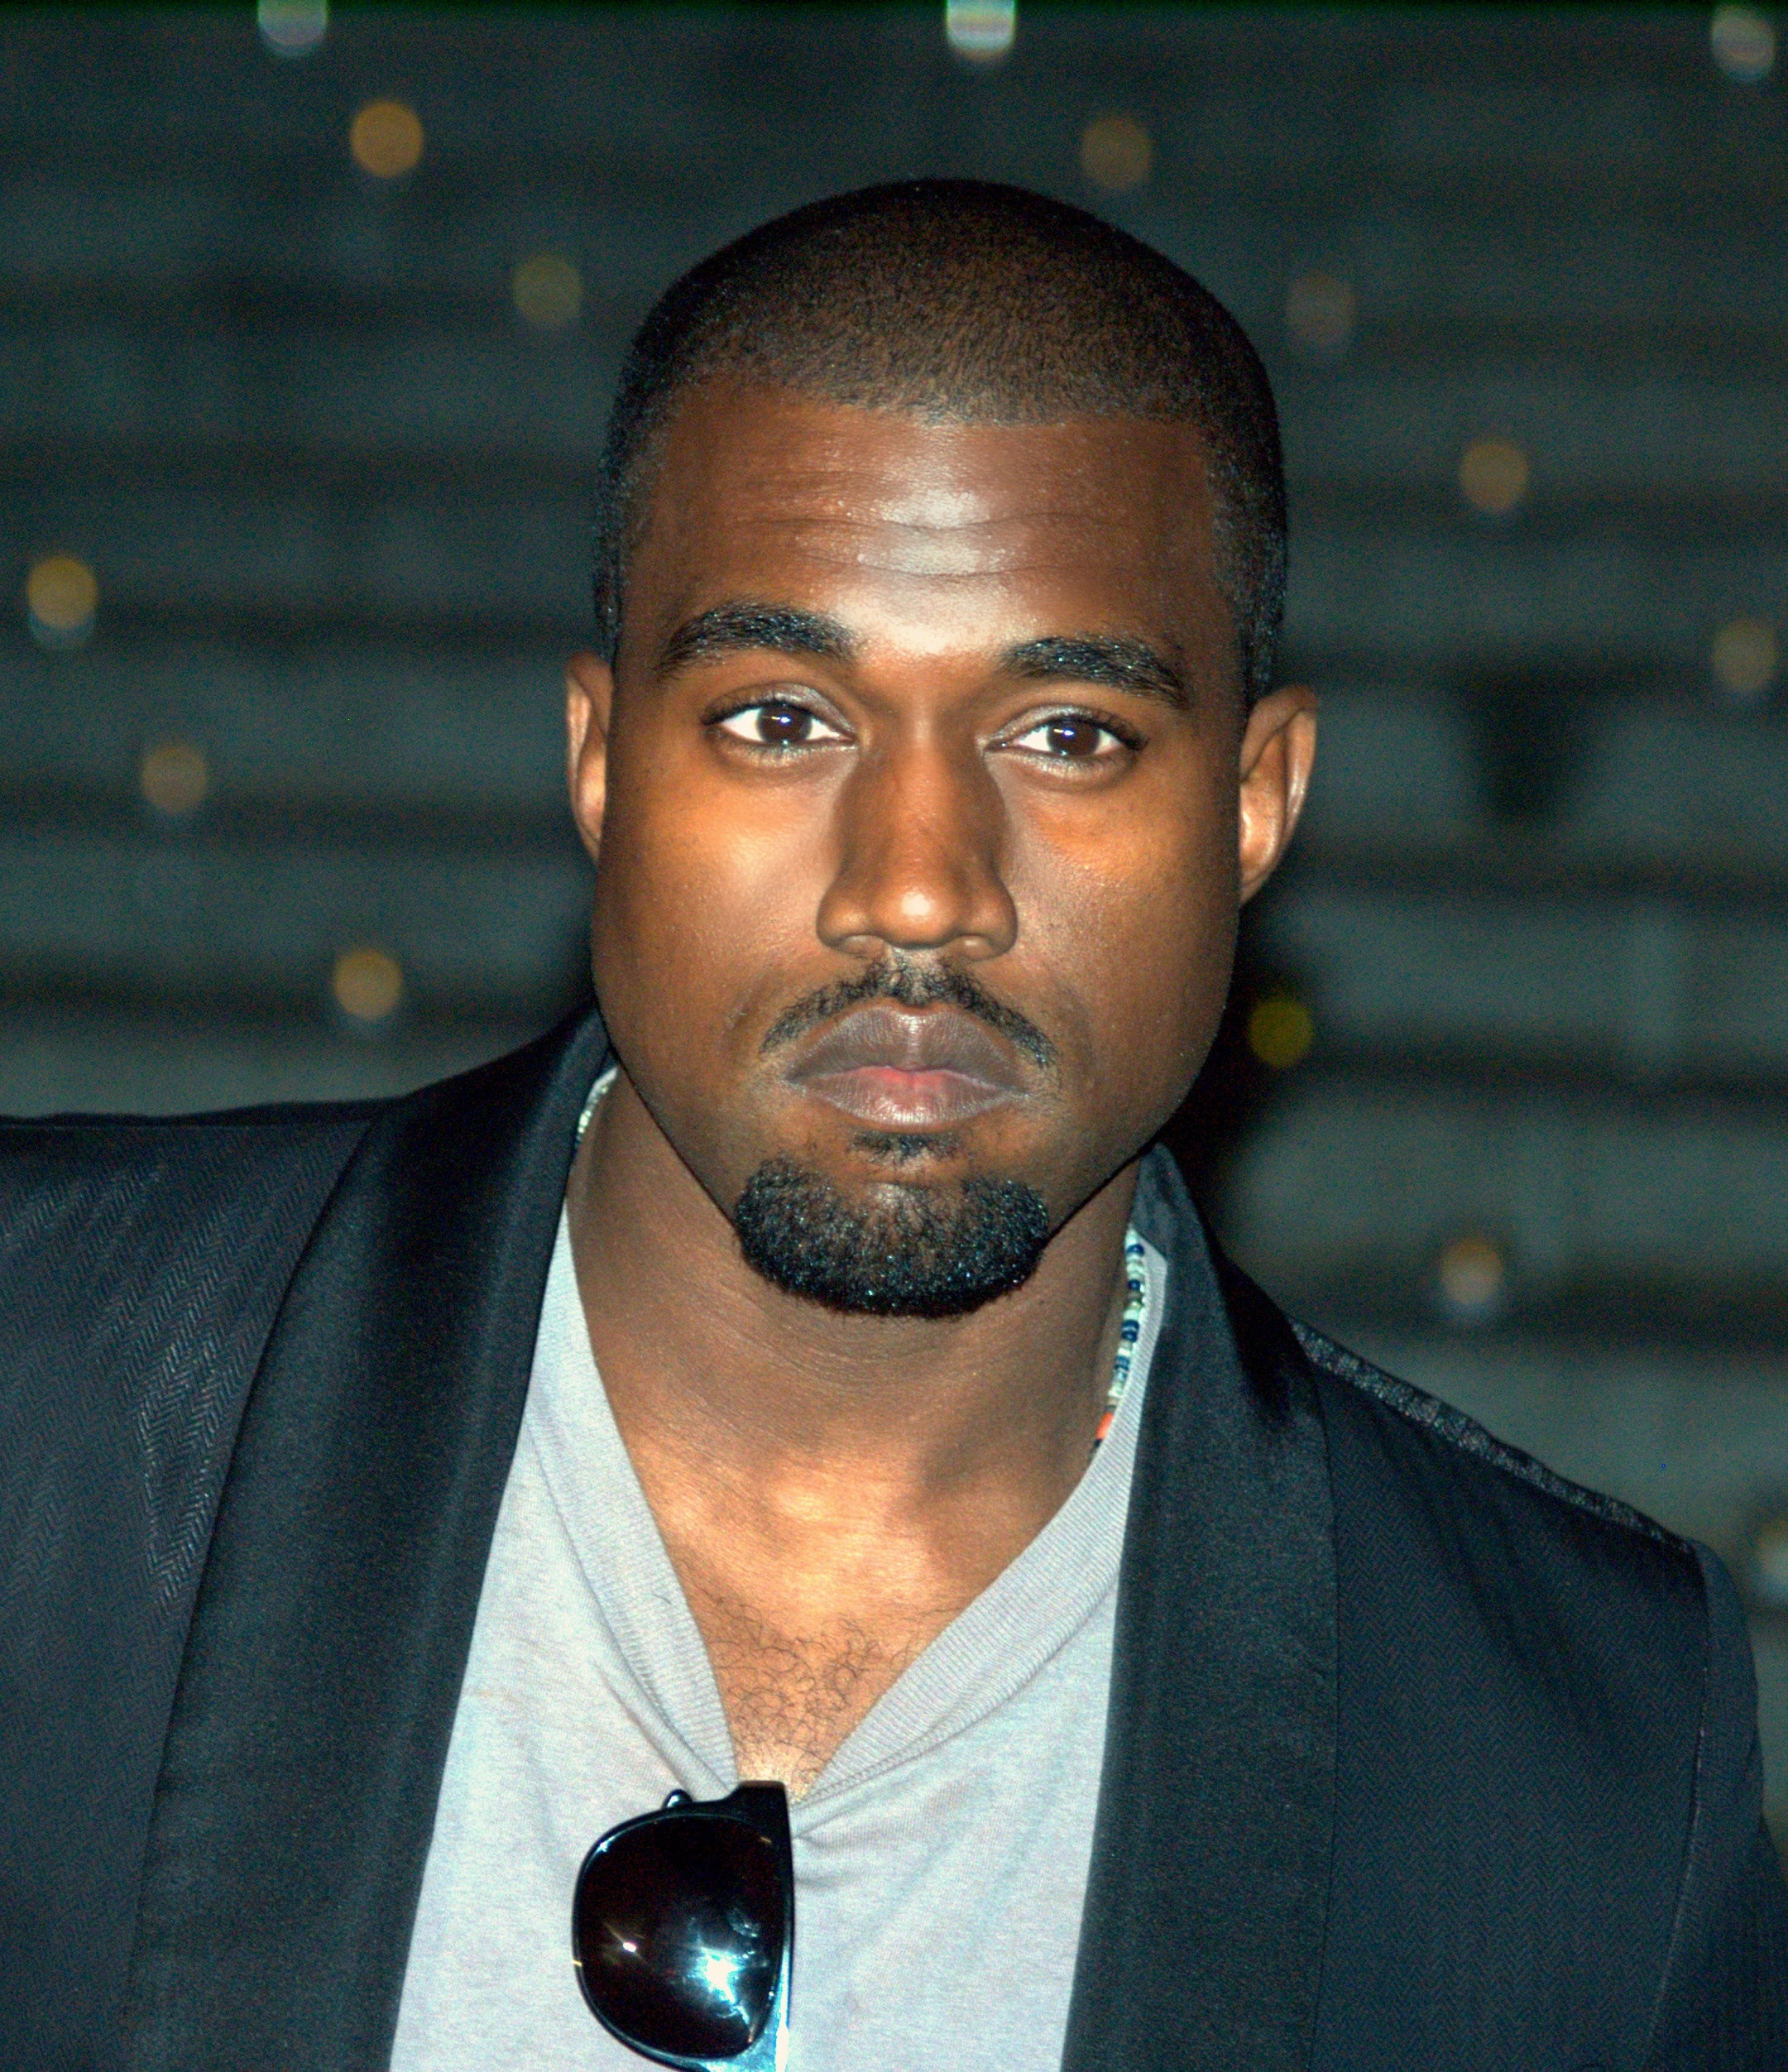 File:Kanye West at the 2009 Tribeca Film Festival.jpg - Wikimedia ...